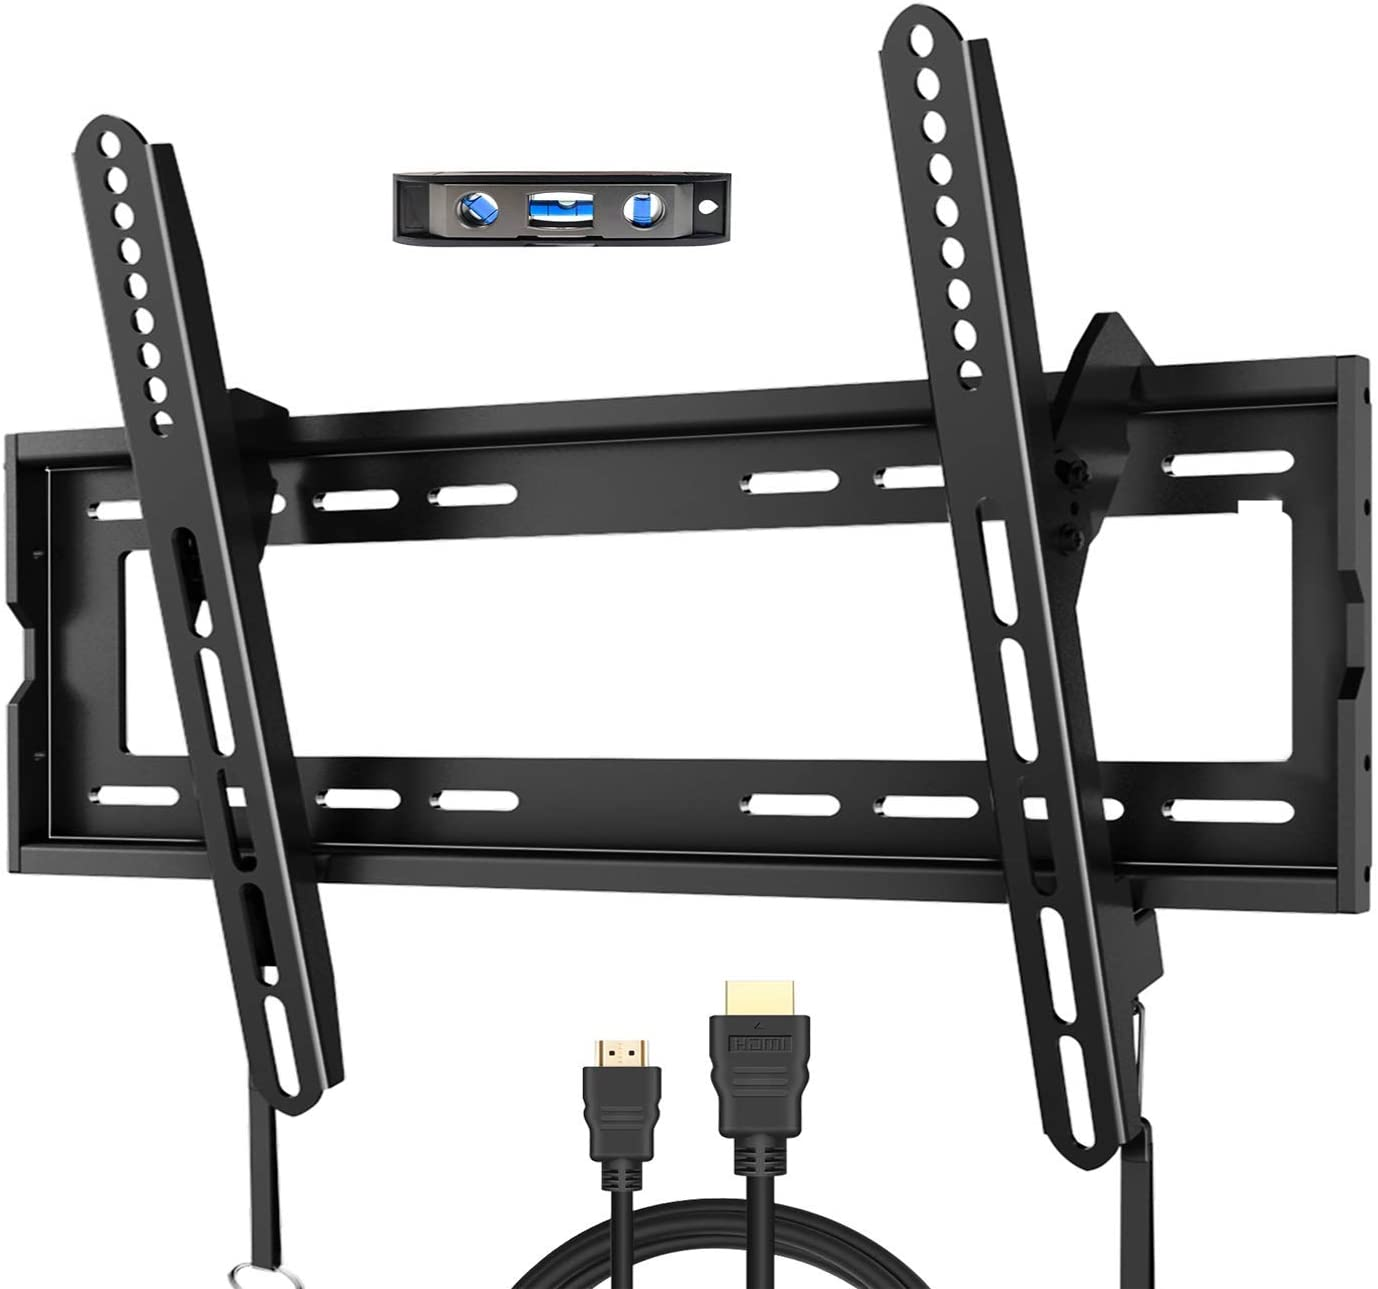 Fozimoa tv Wall mounts Bracket for Most 32-65 Inch tvs, Wall Mount for tv with Swivel articulating arms, Perfect Center Design tv mounts Wall, up to vesa 400x400mm and 165 lbs